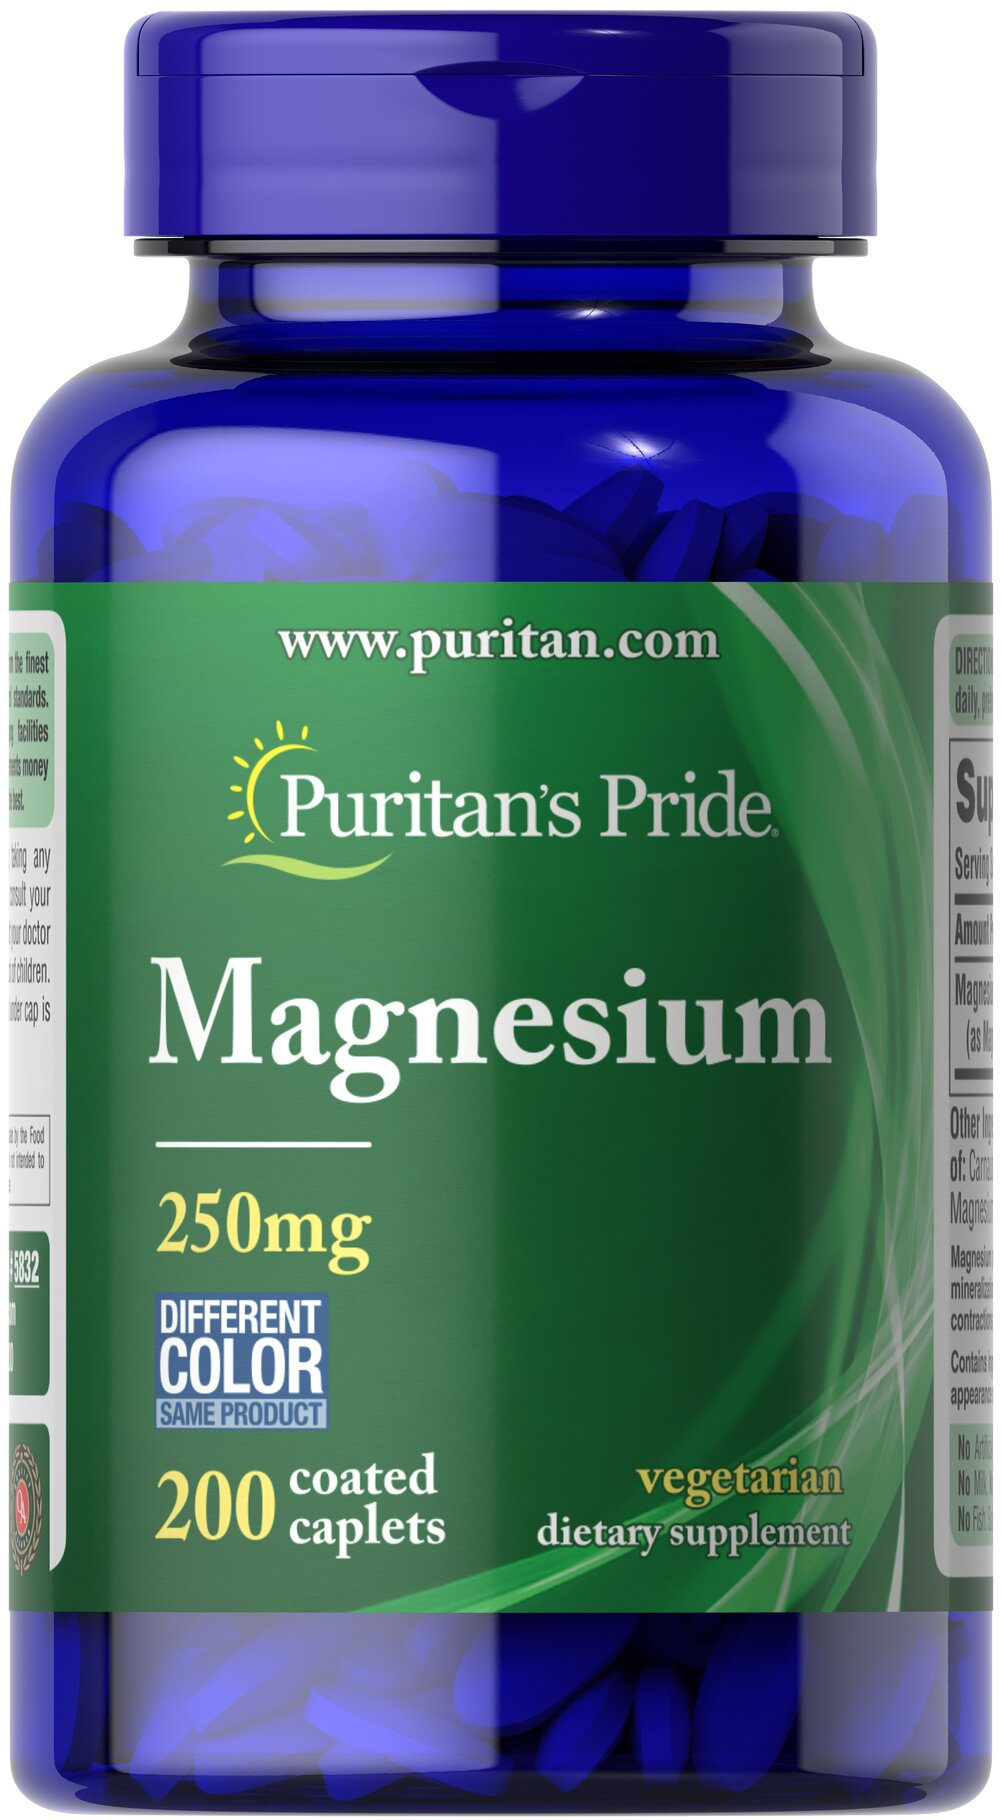 Magnesium 250 mg <p>Magnesium offers another option, besides Calcium, for supporting bone health.** Magnesium plays an essential role in maintaining bone mineralization, and is also involved in muscle contractions and nerve impulses.** Adults can take one caplet daily with a meal.</p> 200 Caplets 250 mg $15.99